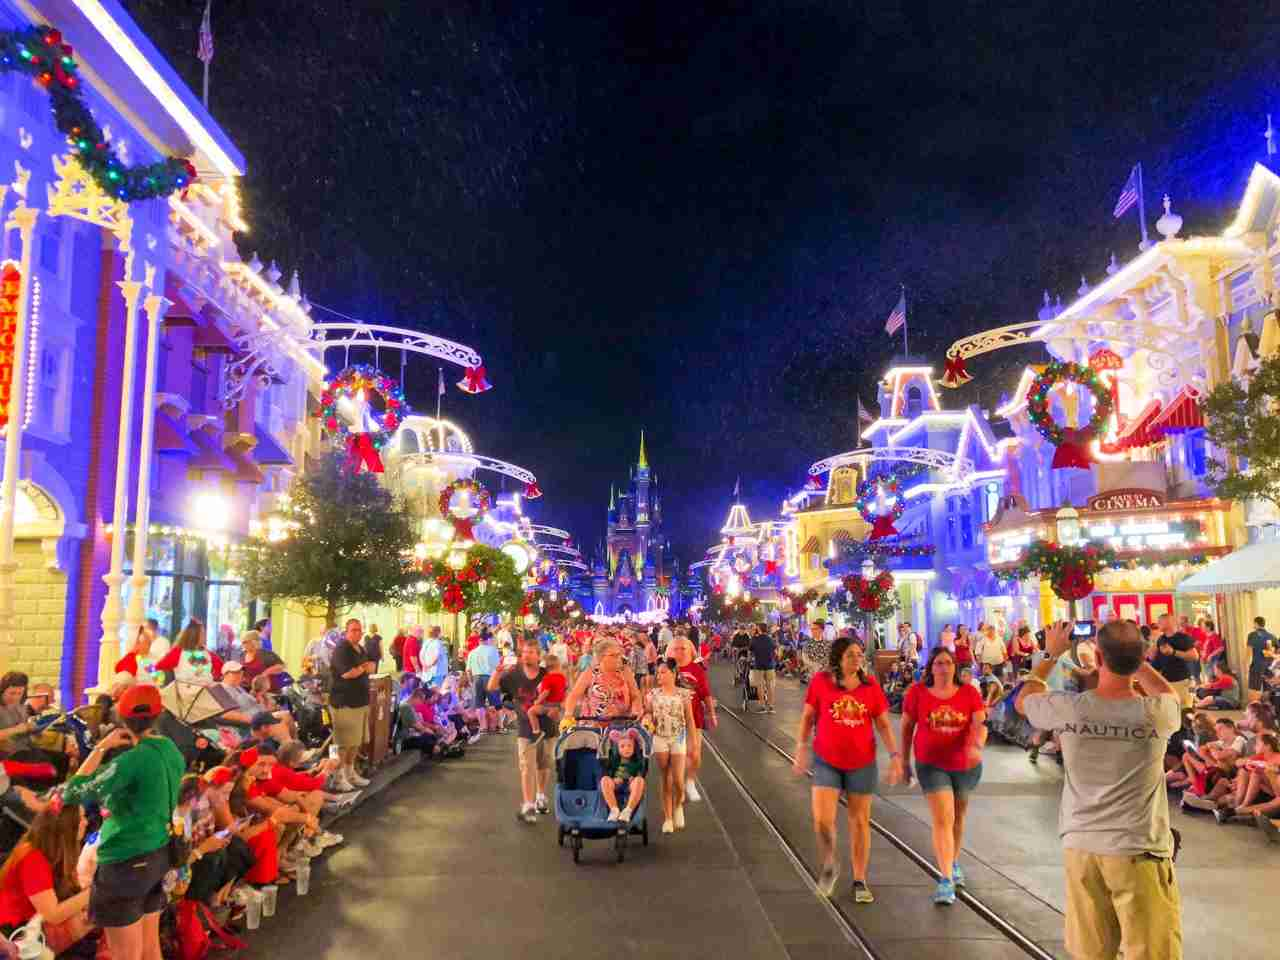 Disney at Christmas (Summer Hull / The Points Guy)